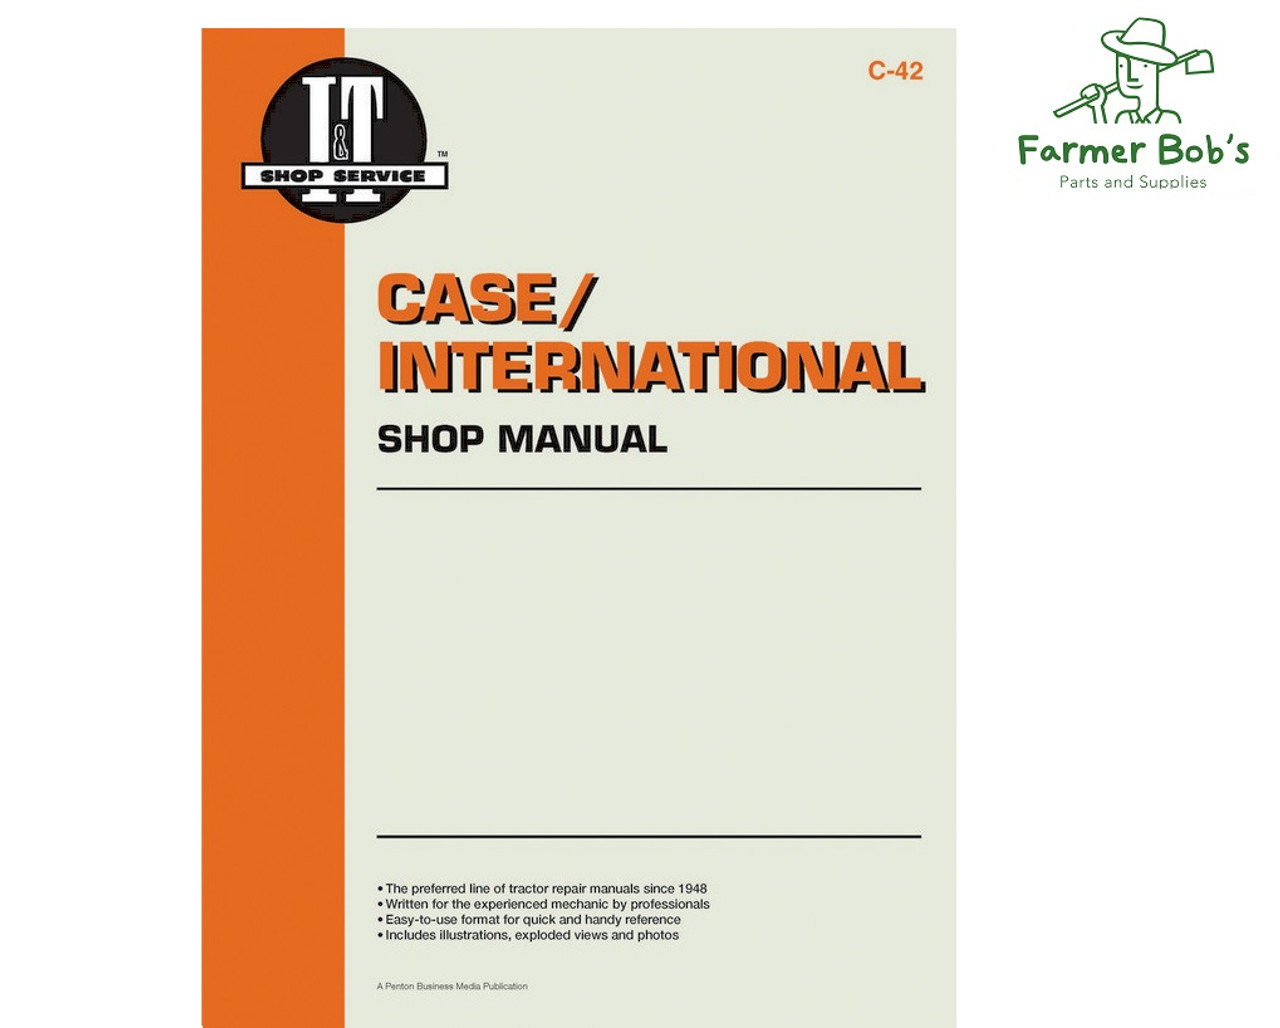 c42 - case / international manual covers models, 235, 245, 255, 265